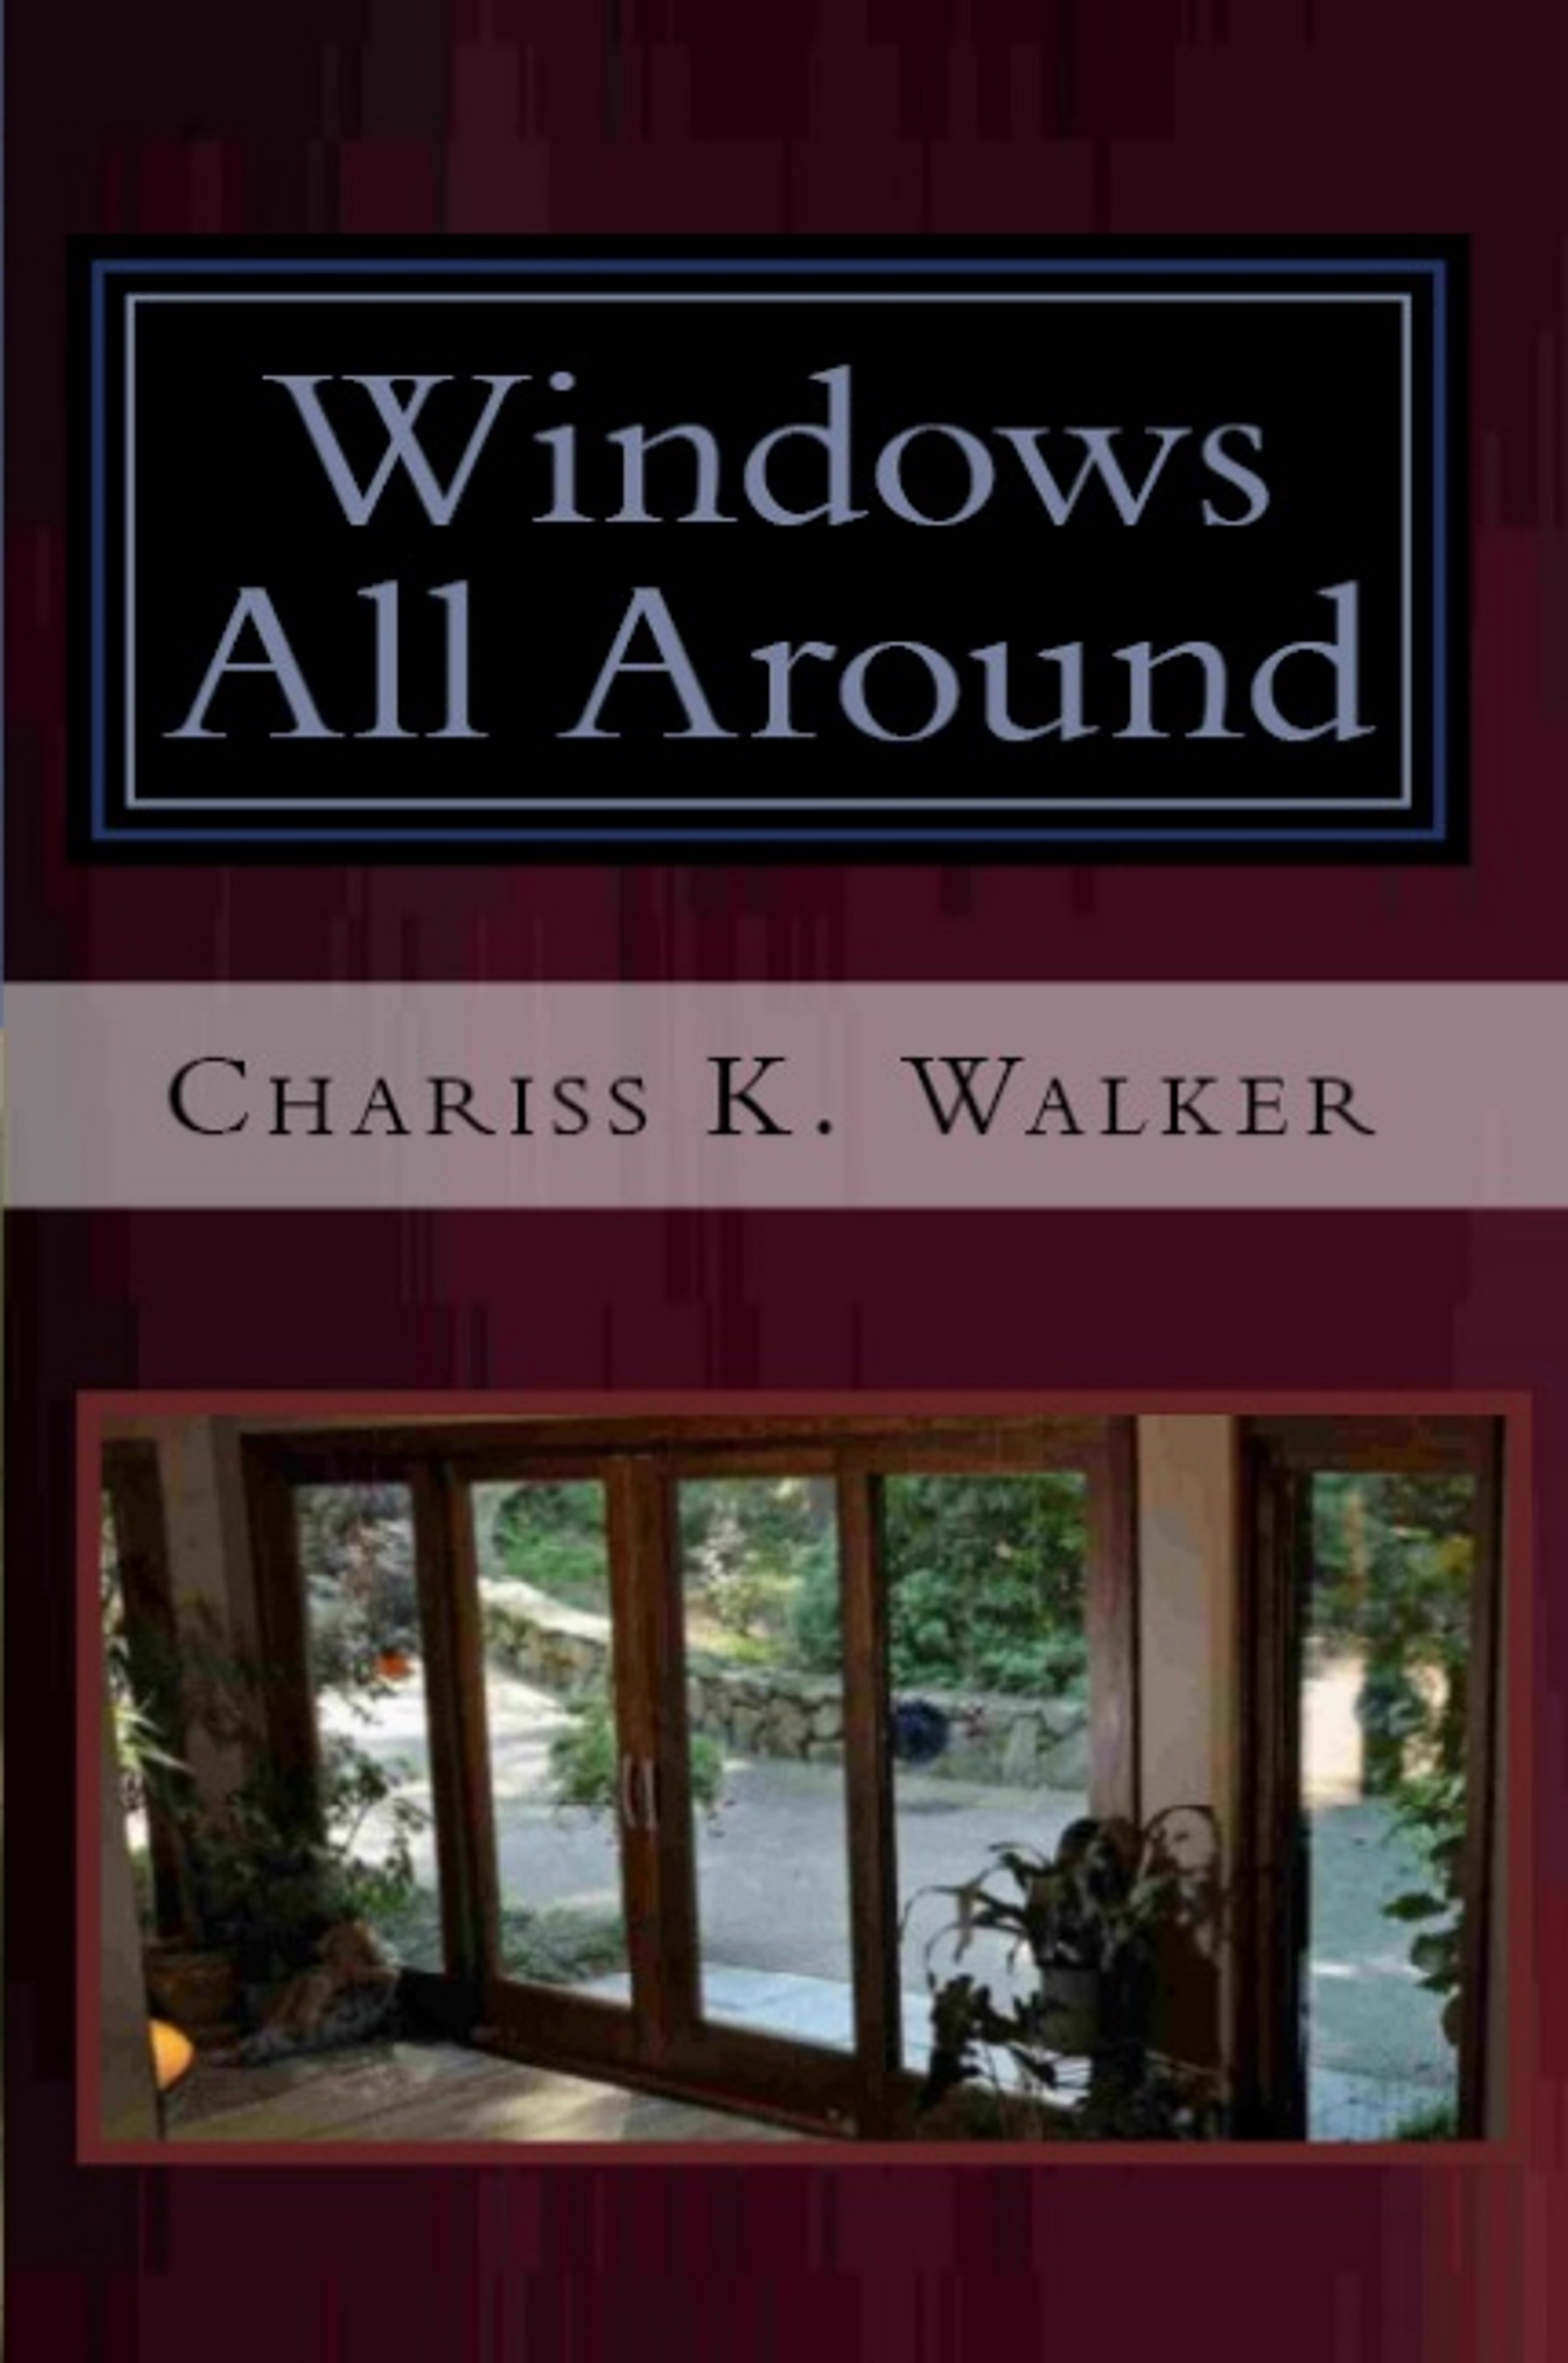 Windows All Around (The Vision Chronicles Book 4)